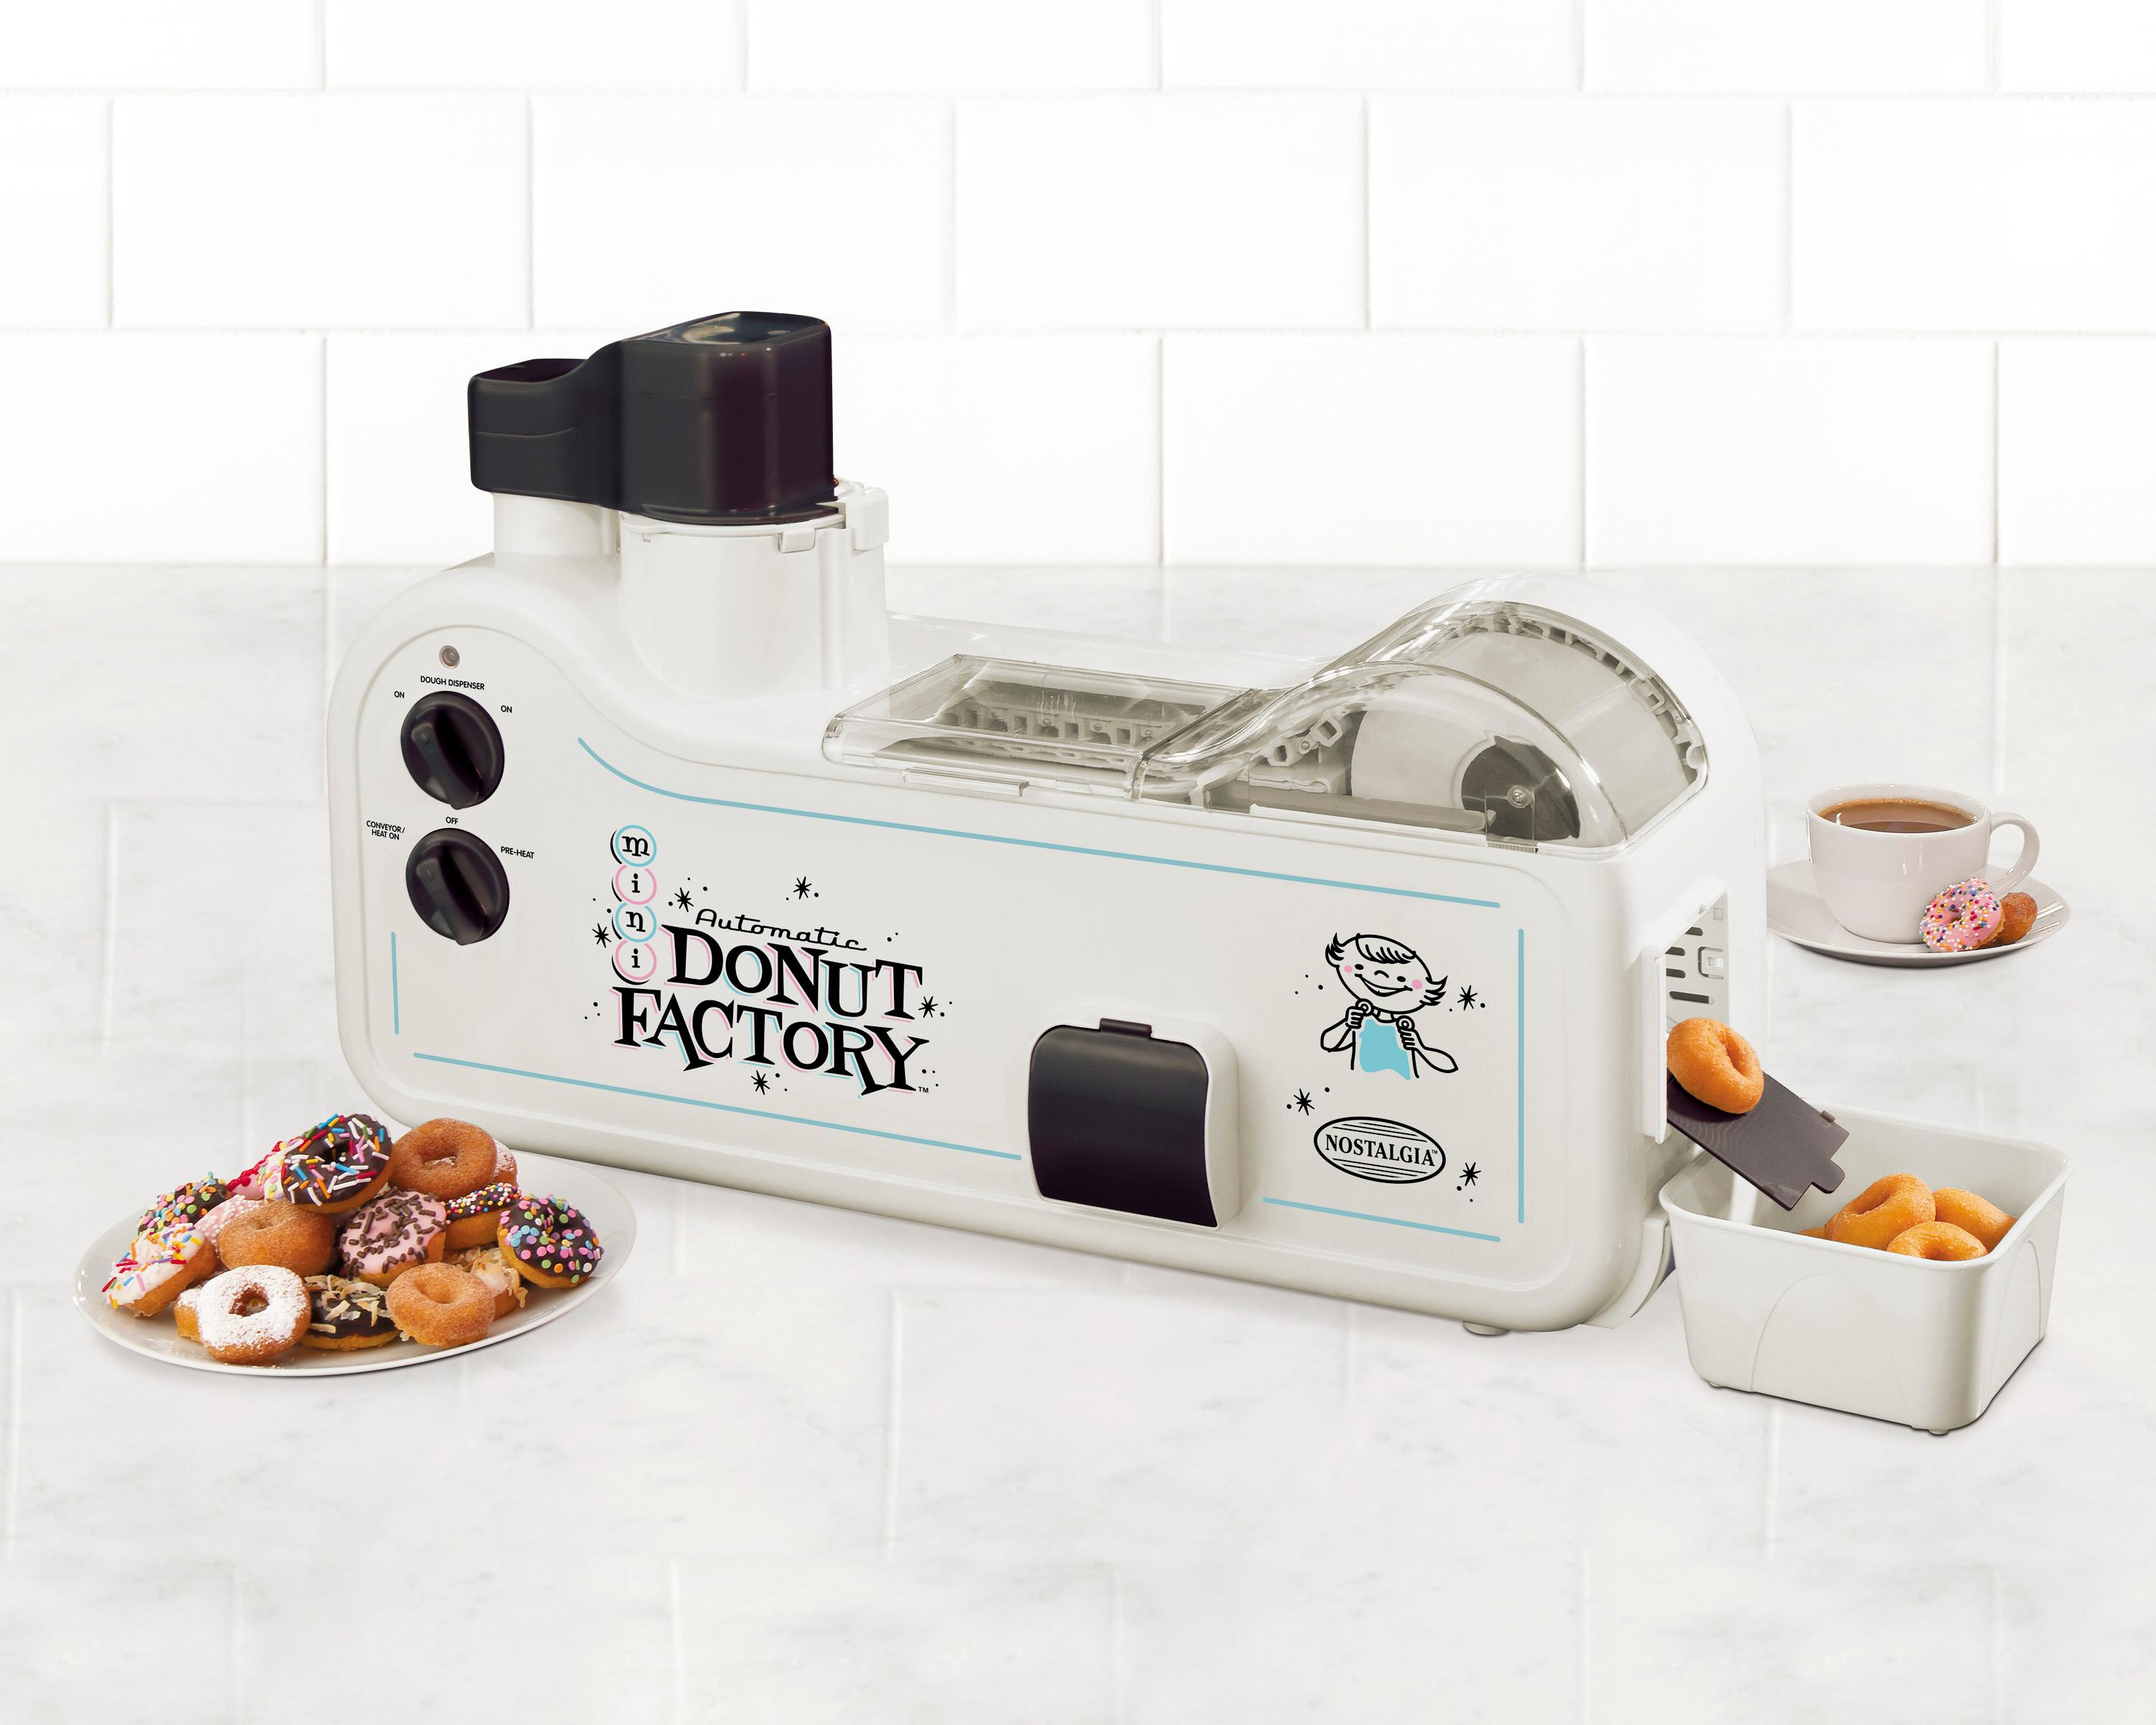 nostalgia mdf200 automatic mini donut factory donut maker kitchen dining. Black Bedroom Furniture Sets. Home Design Ideas